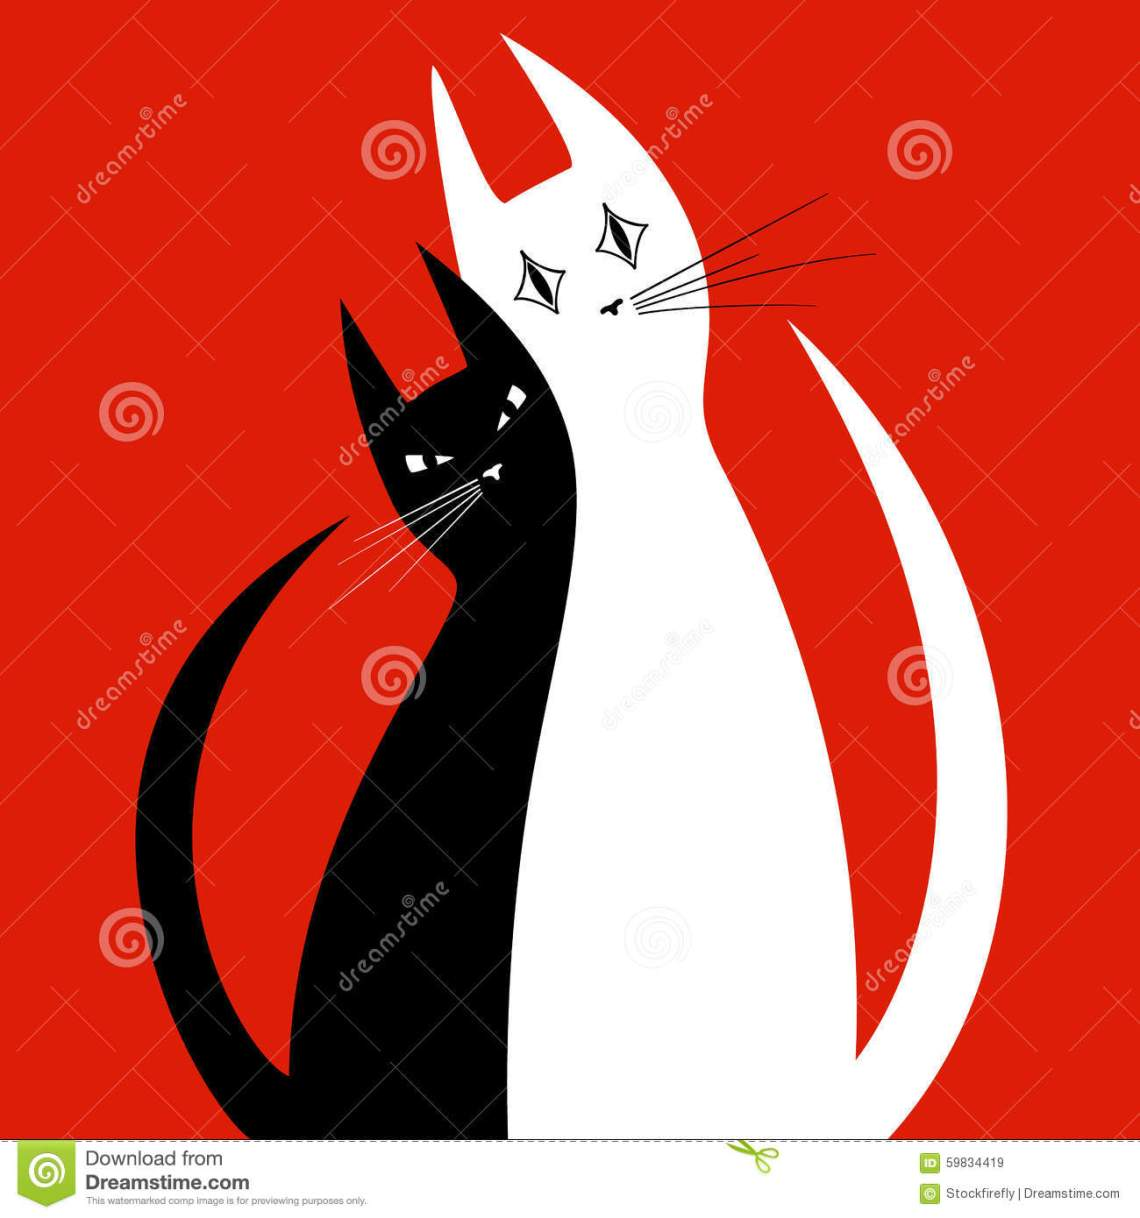 Download Silhouettes Of Two Cats In Love Stock Vector ...